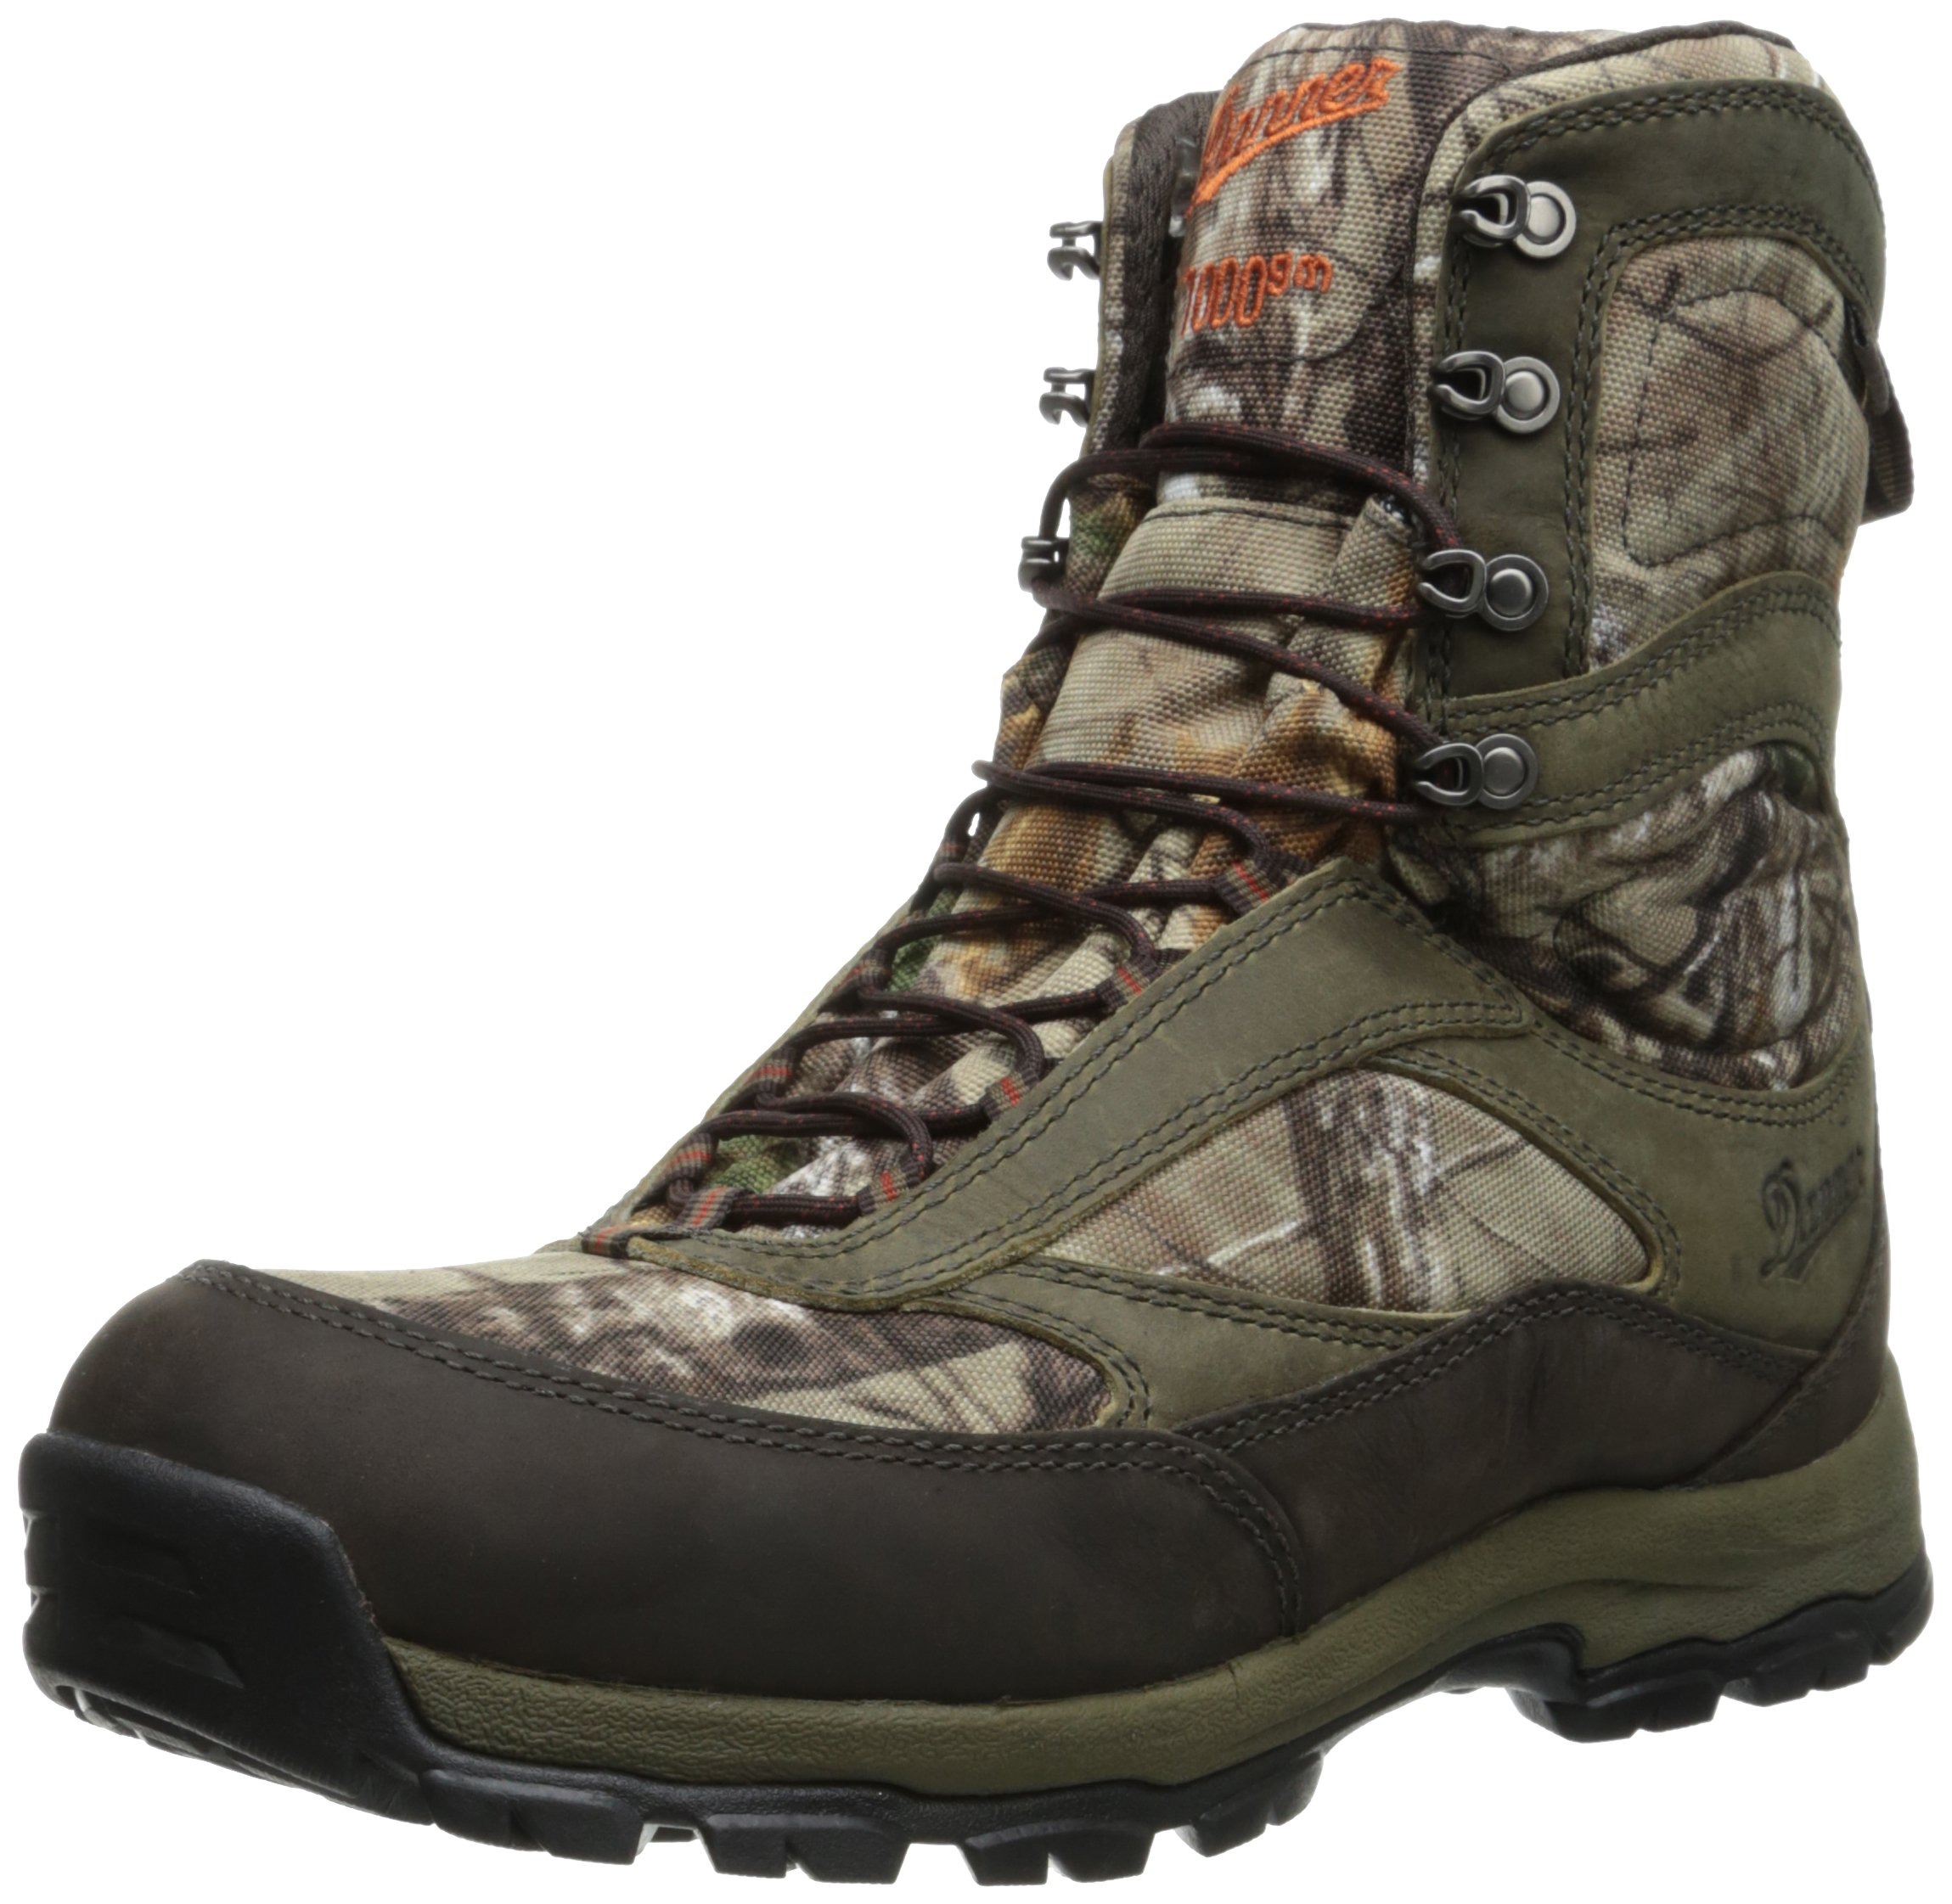 Danner Women's High Ground Realtree Xtra Hunting Boot,Brown/Green,7.5 M US by Danner